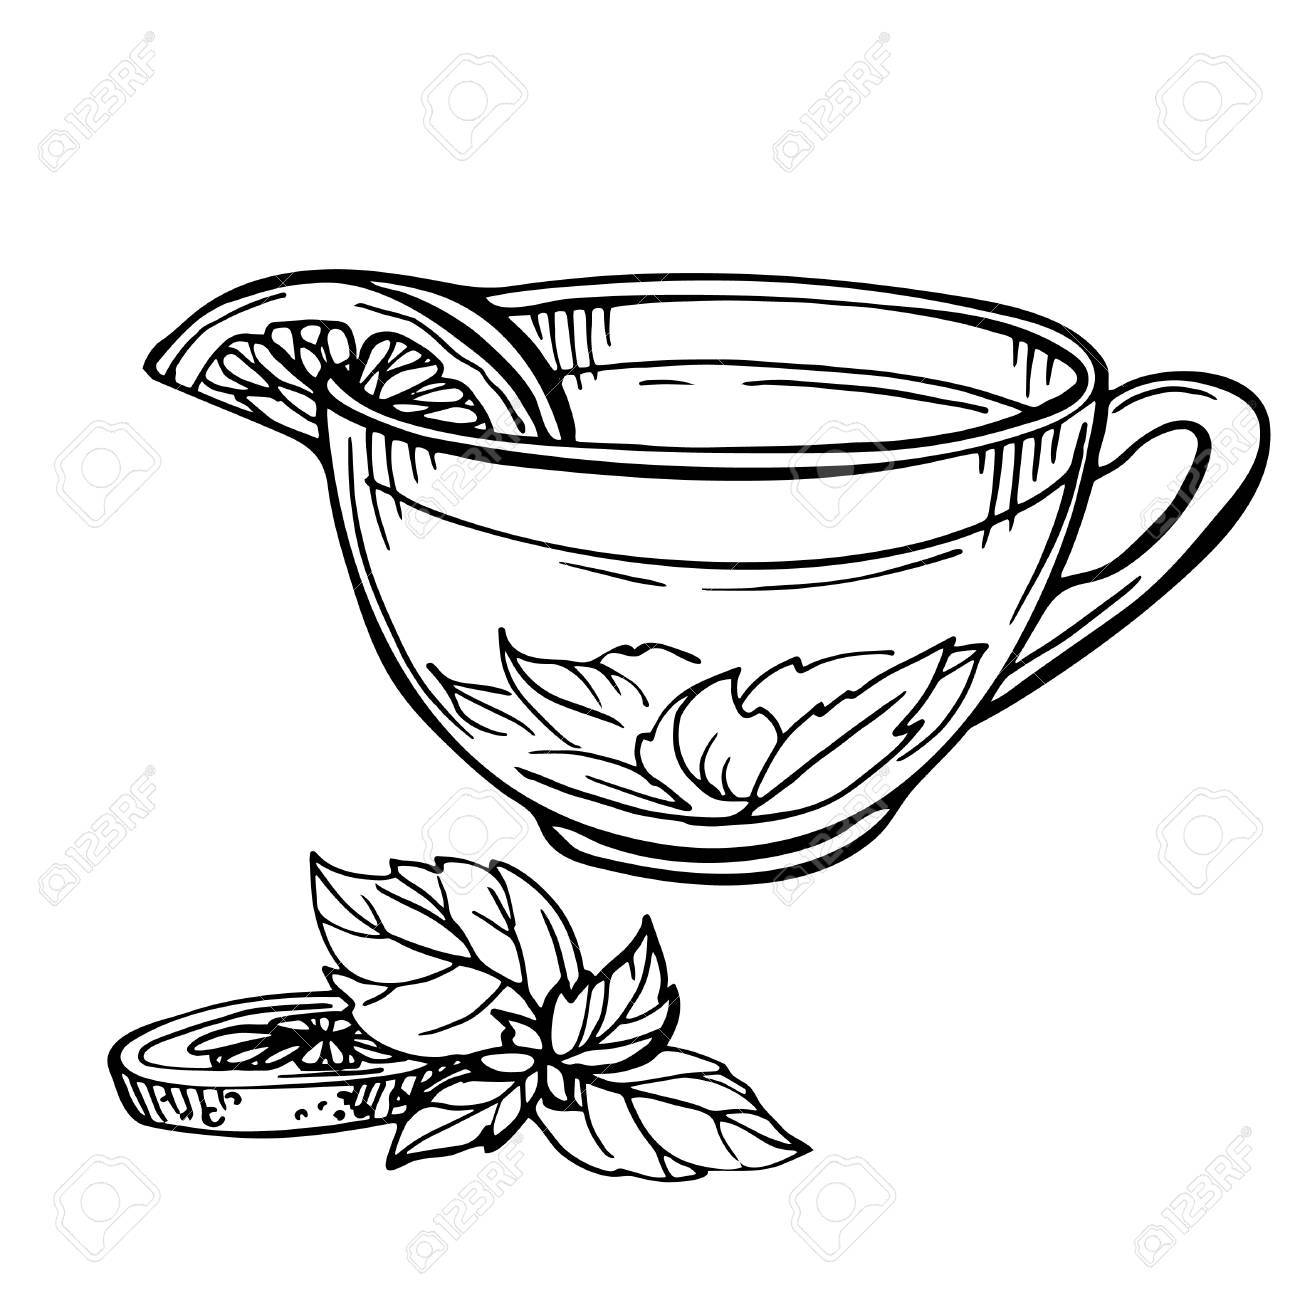 1300x1300 Hand Drawn Sketch Of Tea. Cup Of Tea With Mint And Lime, Lemon